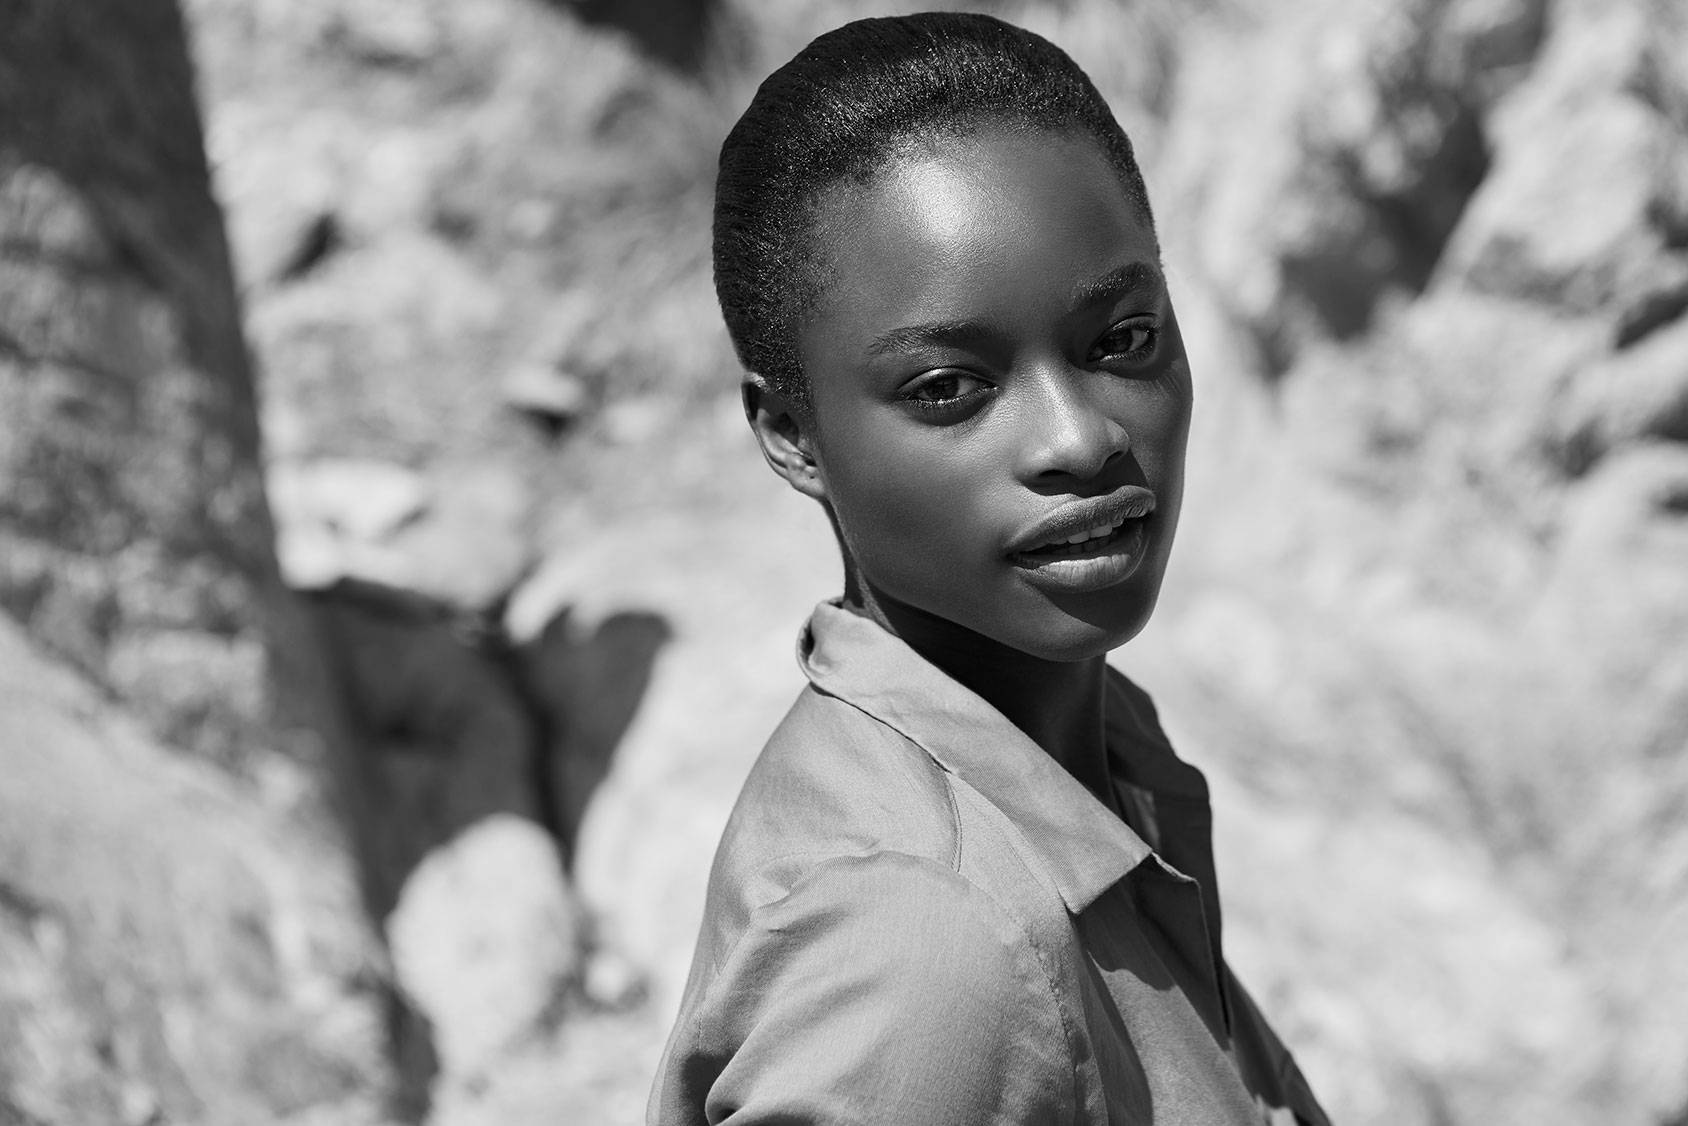 Meet Mayowa – one of H&M's summer stars